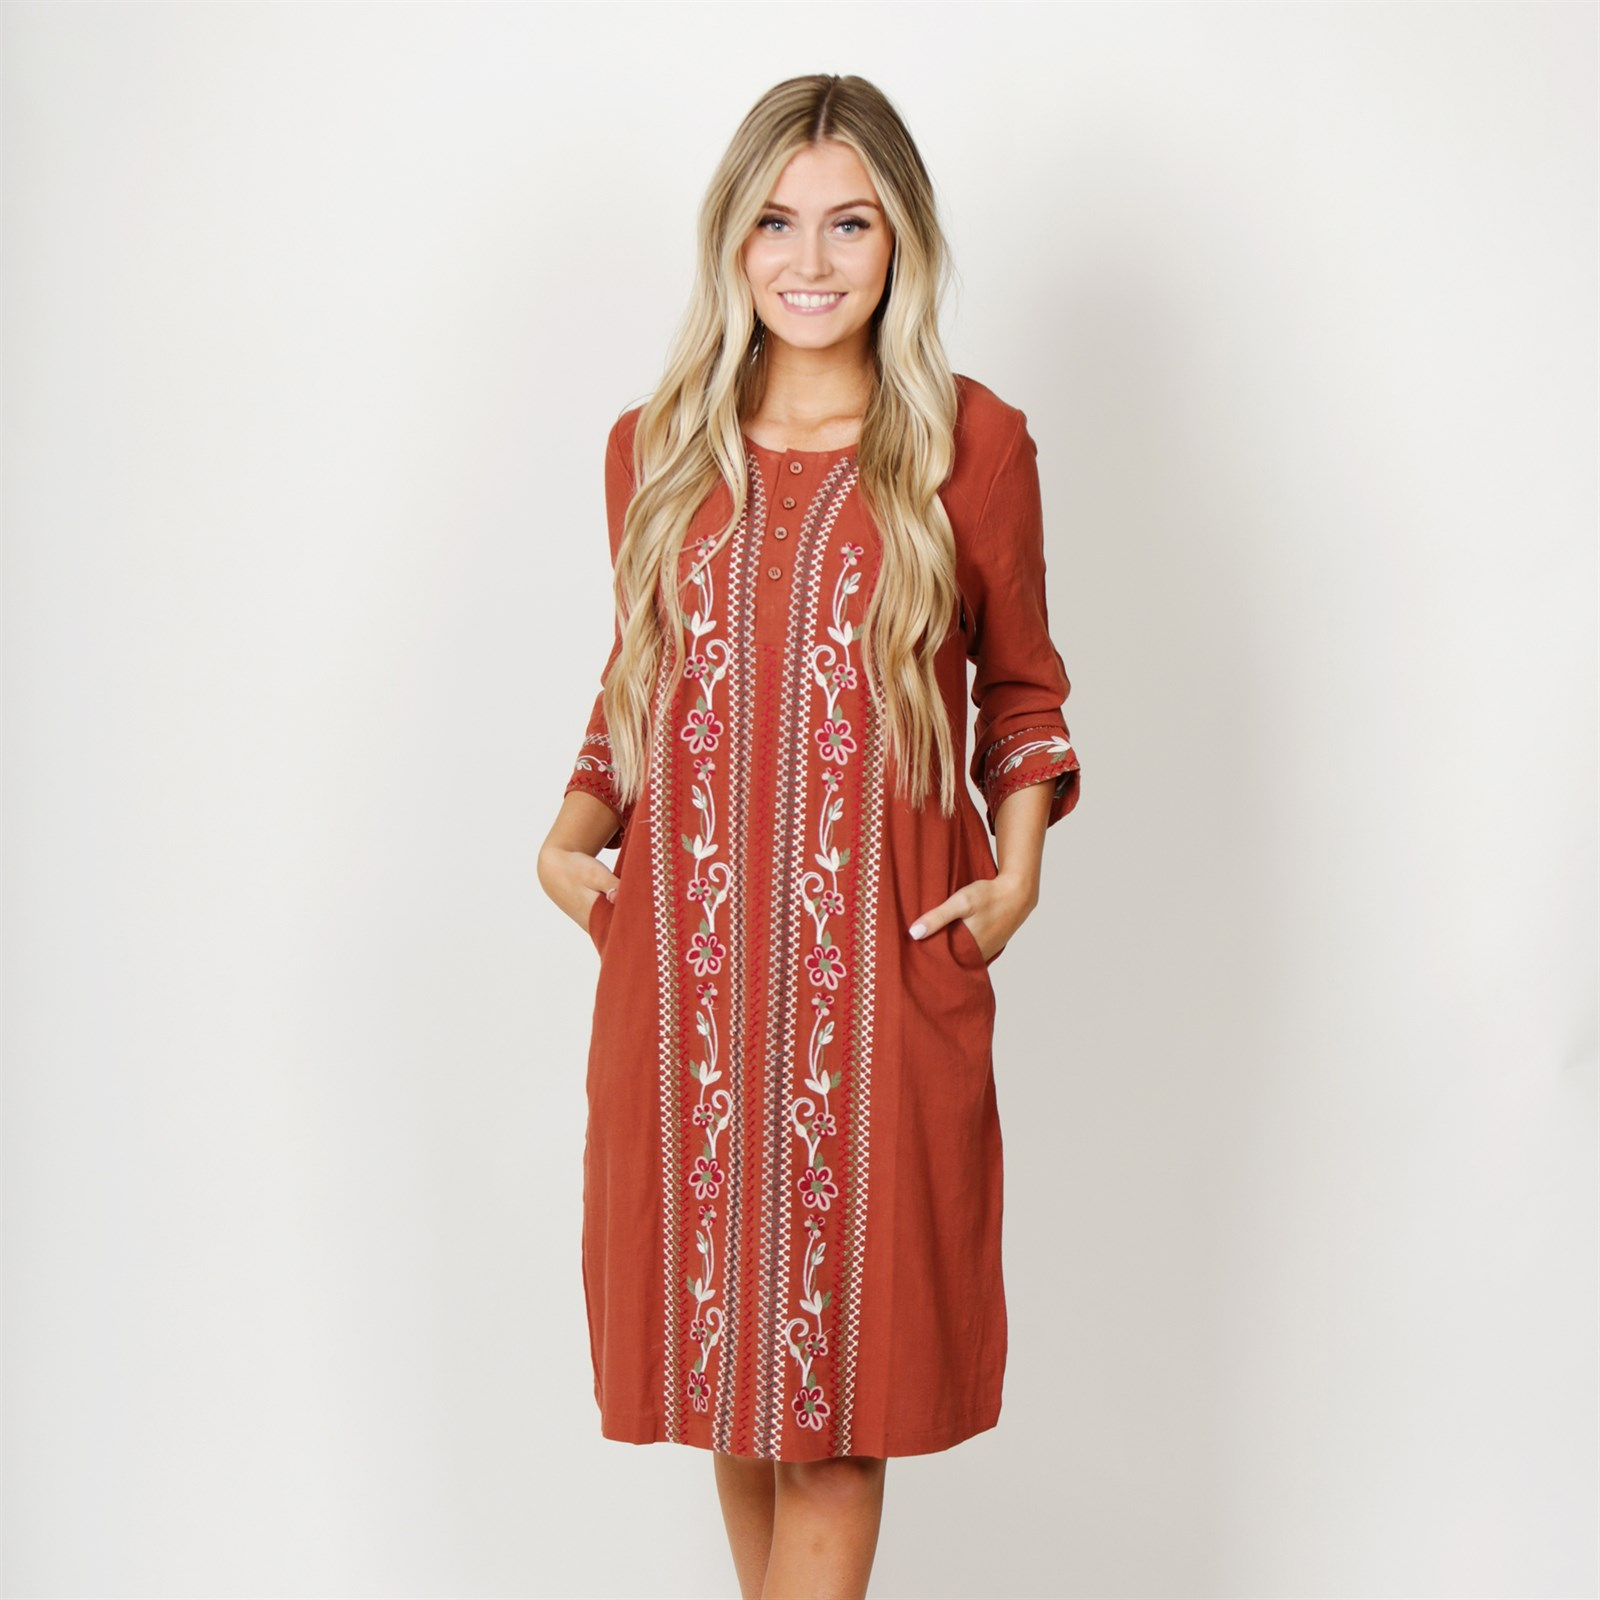 Embroidered Dresses for Women Only $25.99 w/ Free Shipping